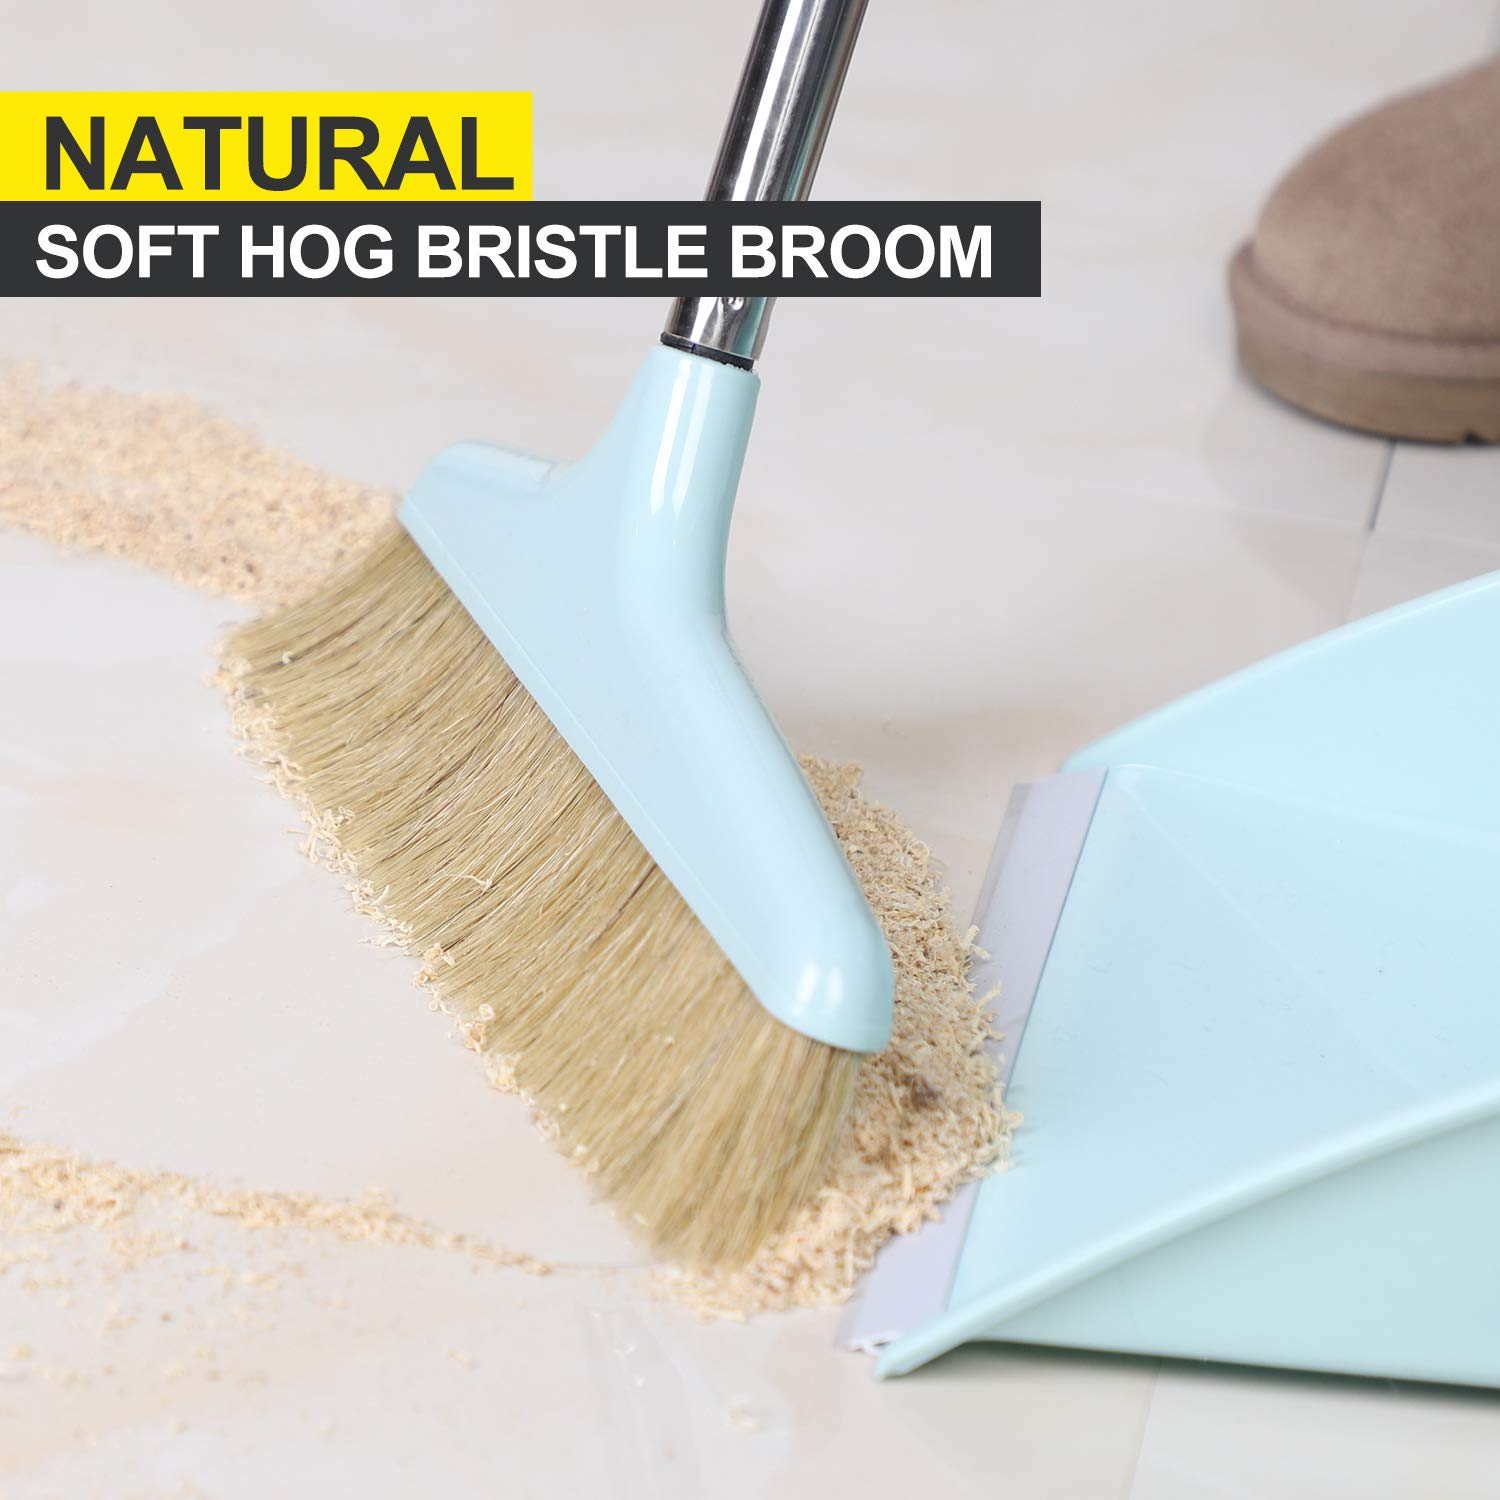 Midoneat Broom and Dustpan Set Squeegee 3 Packs Good Grips Sweep Set with Long Handle Natural hog Bristle Broom Rubber Lip Dustpan with Comb 180° Rotation Wiper .Sweeping for Kitchen Lobby Office by midoneat (Image #6)